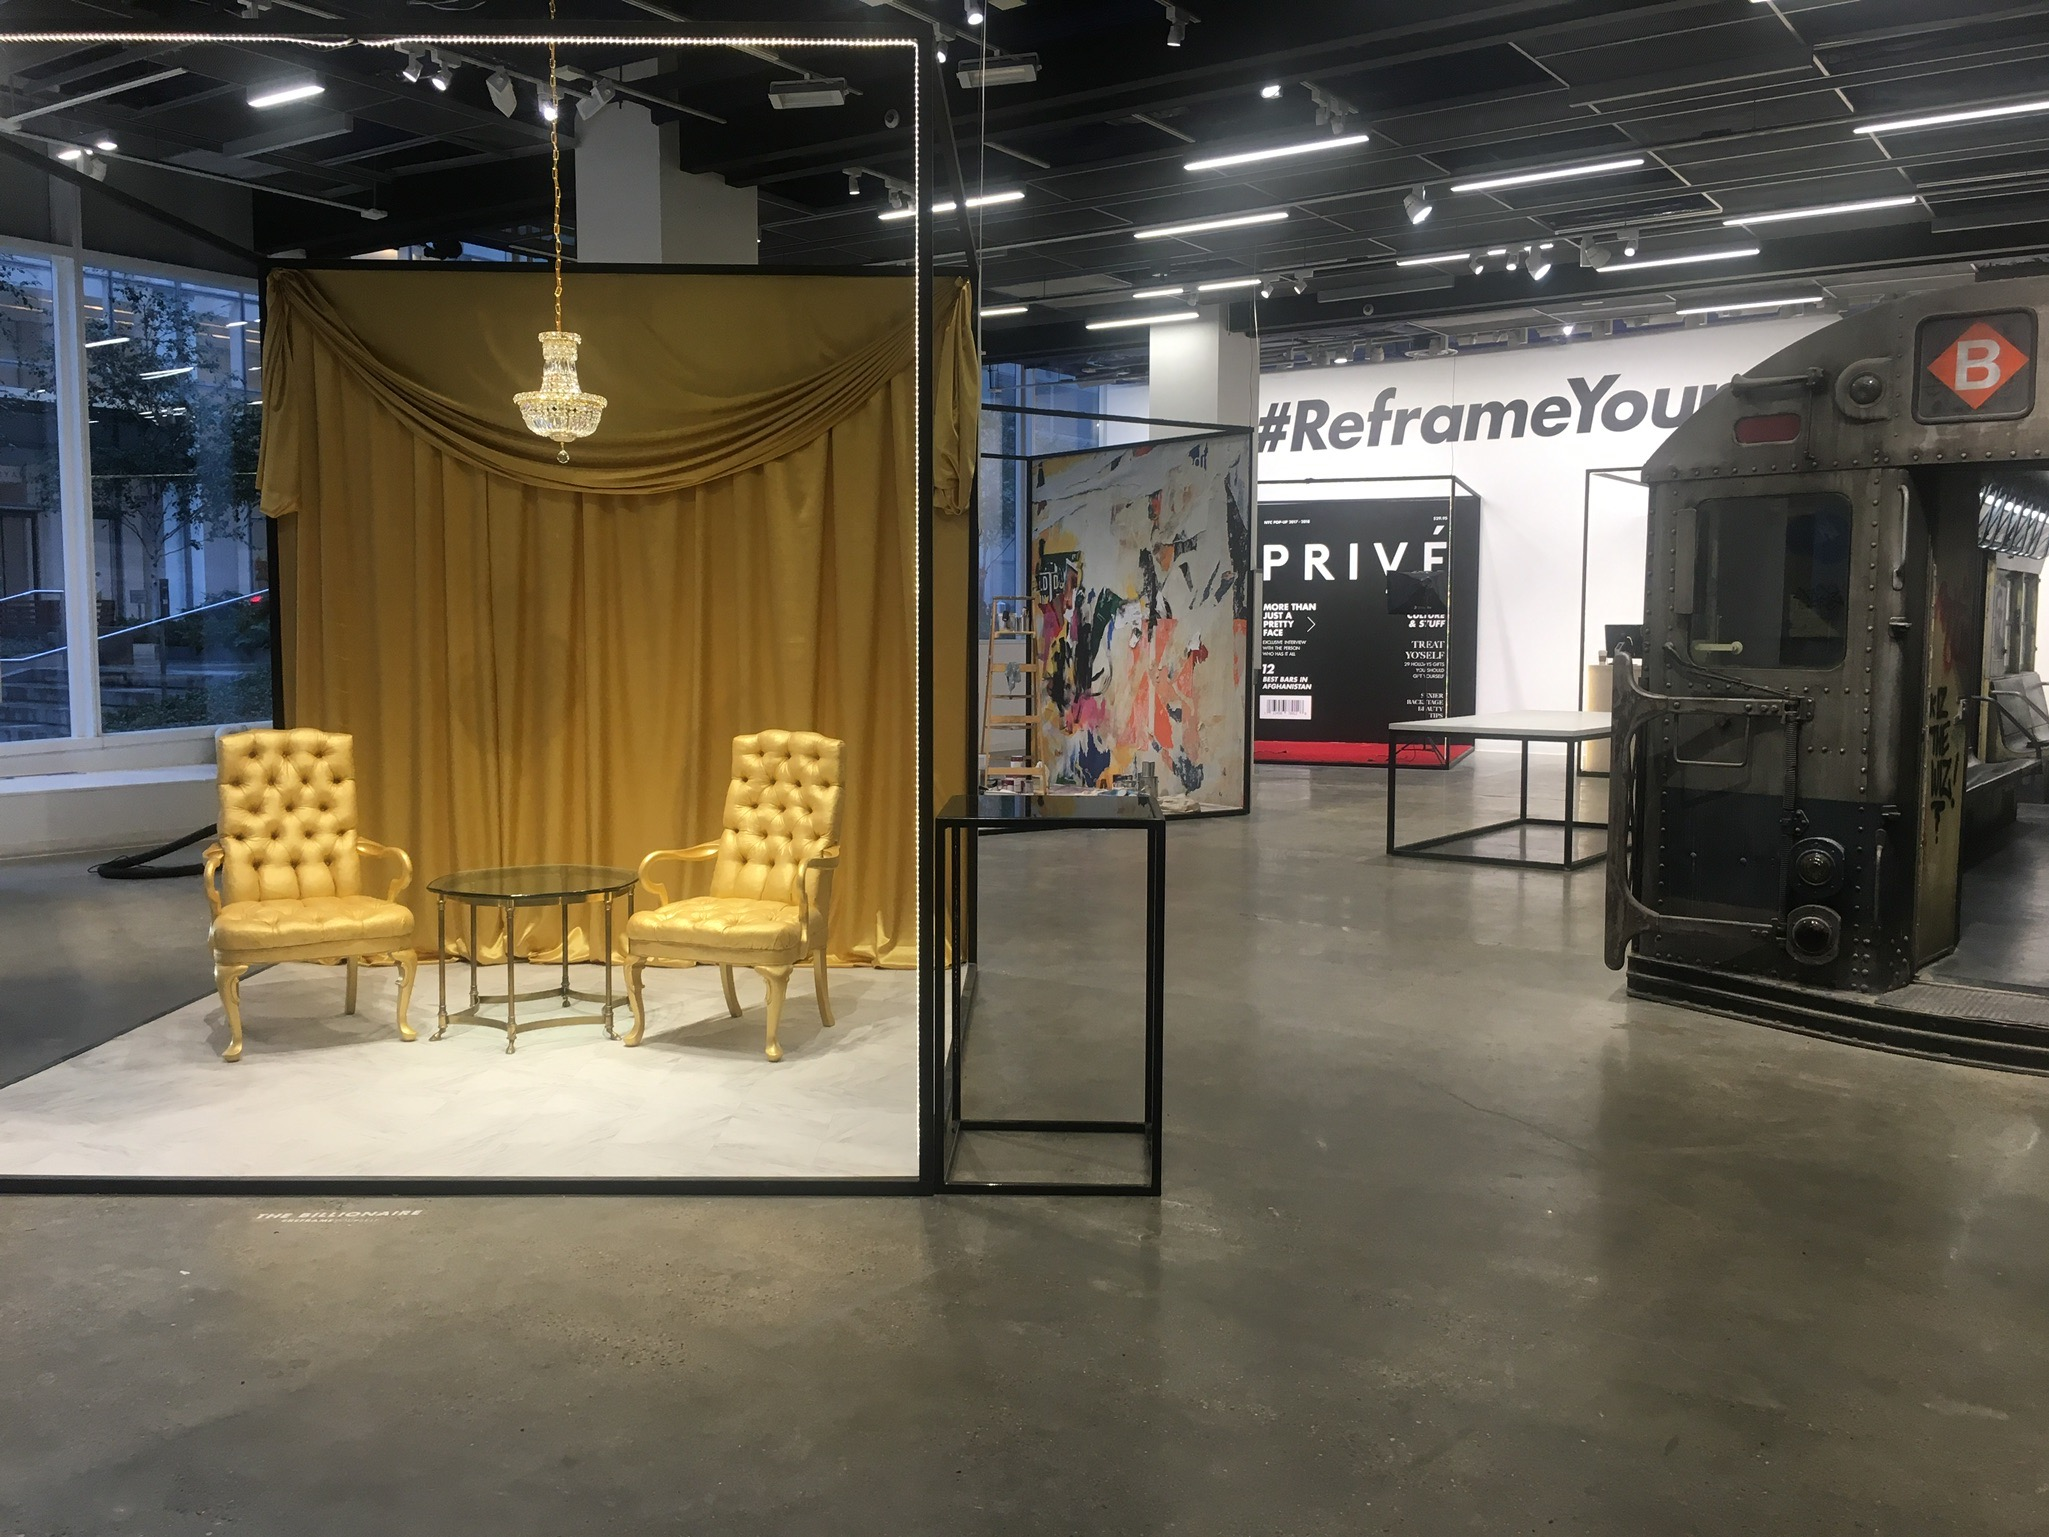 Preview Events - Prive Revaux - framed display.jpg